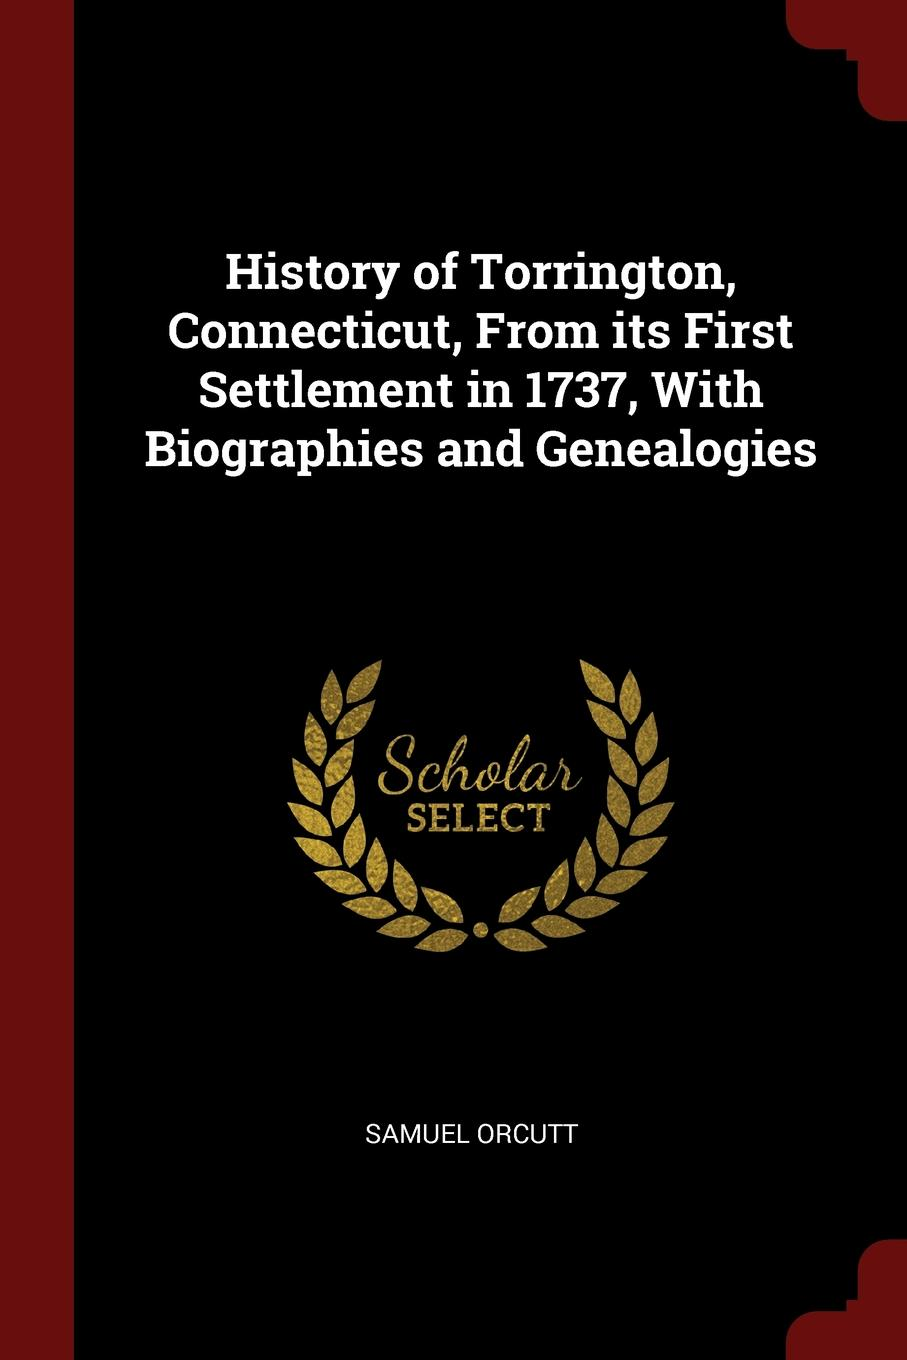 History of Torrington, Connecticut, From its First Settlement in 1737, With Biographies and Genealogies